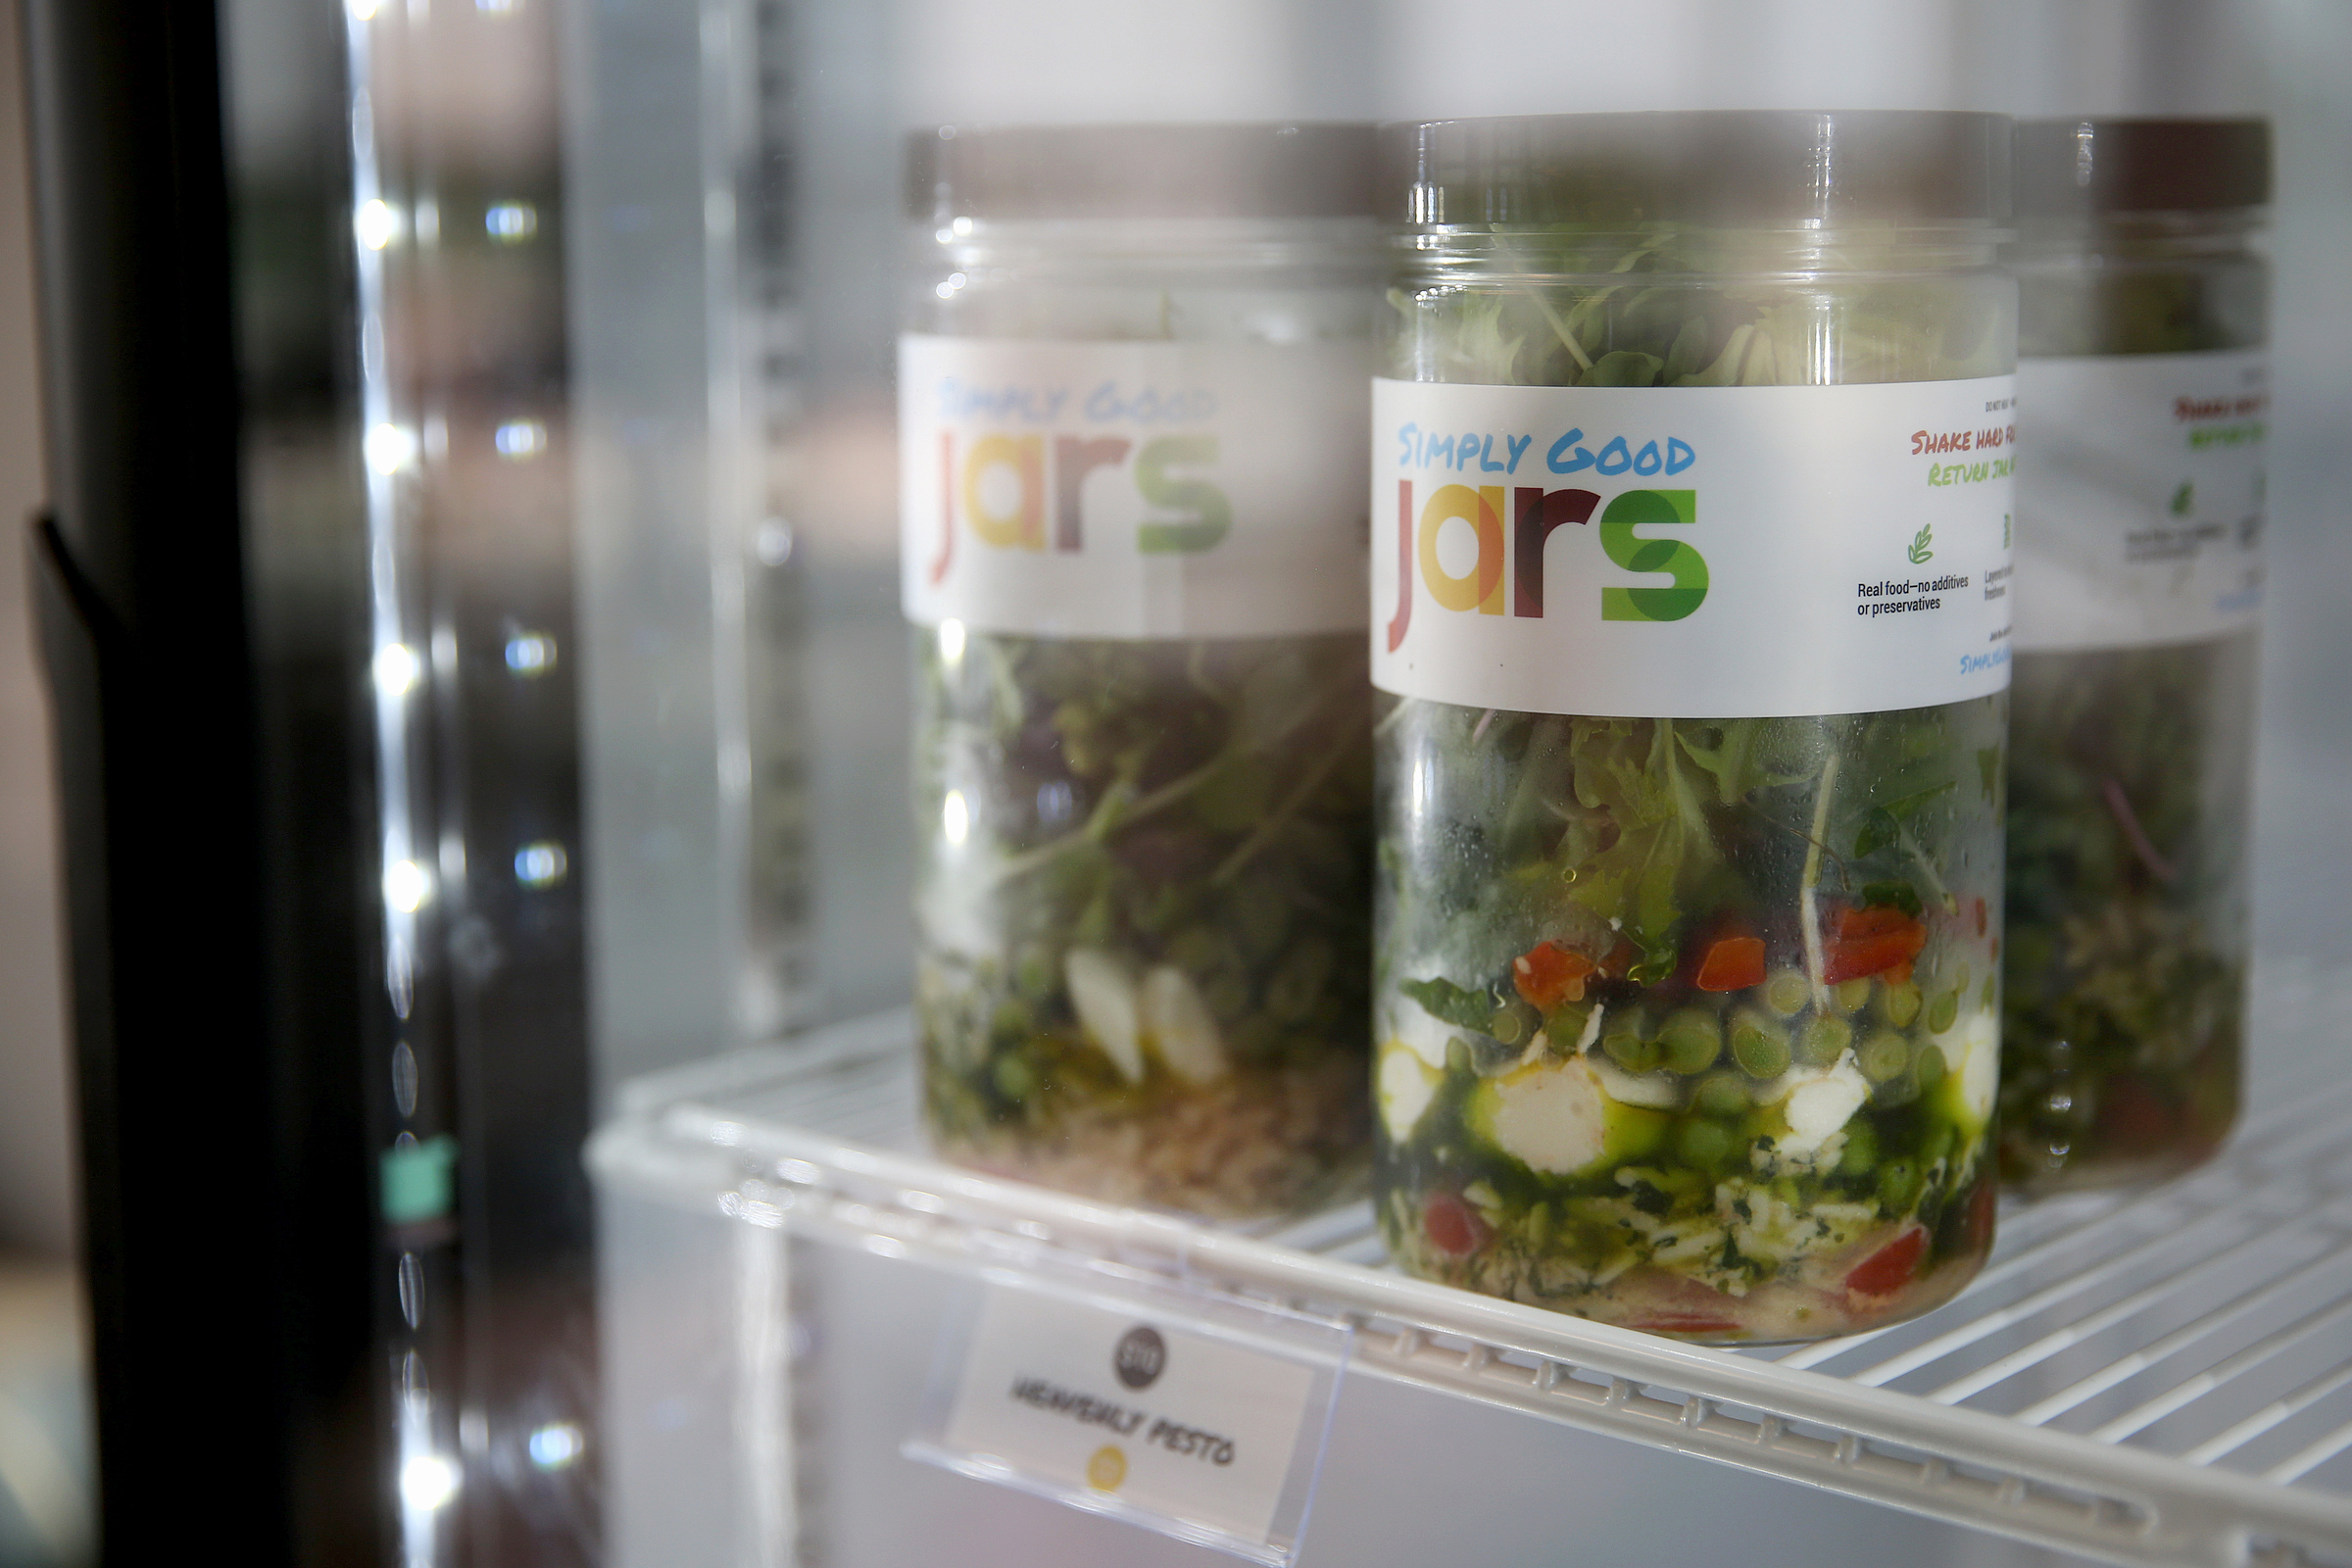 Simply Good Jars meals are sourced from local farms and all 600 calories or less.